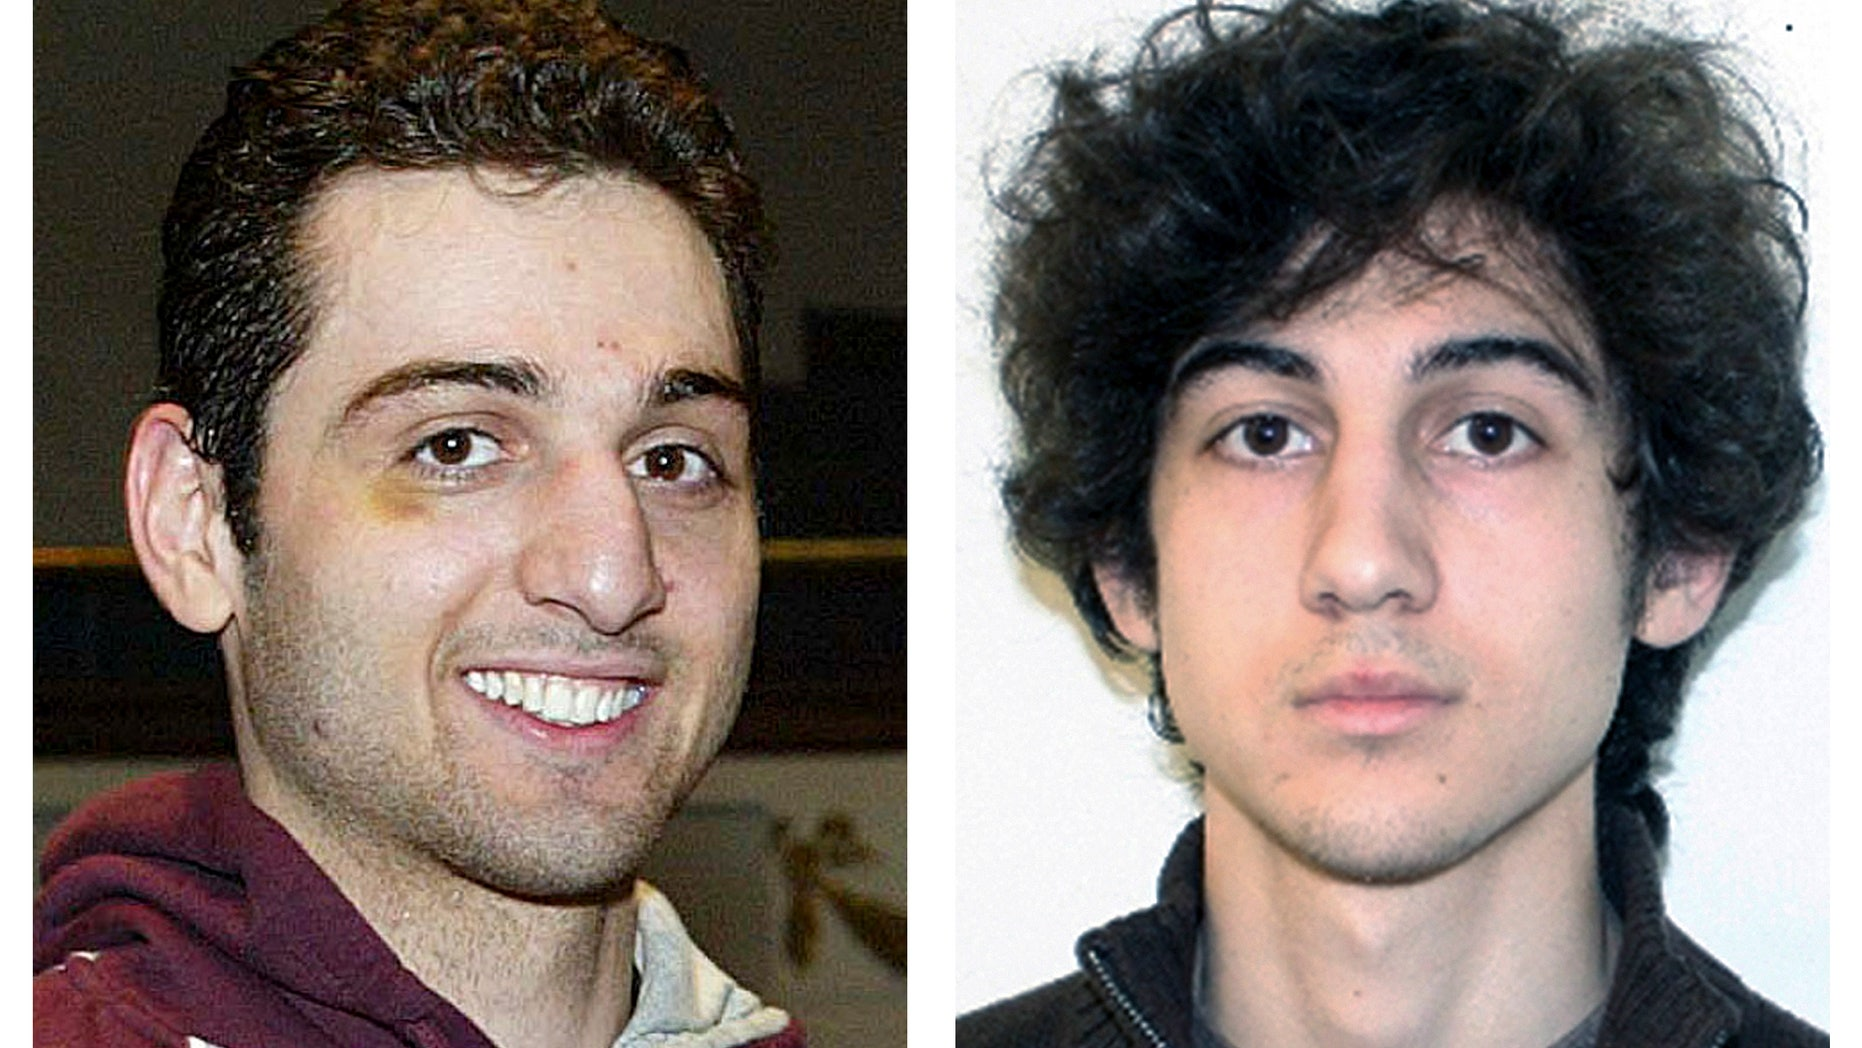 This combination of file photos shows brothers Tamerlan, left, and Dzhokhar Tsarnaev, suspects in the Boston Marathon bombings on April 15, 2013.